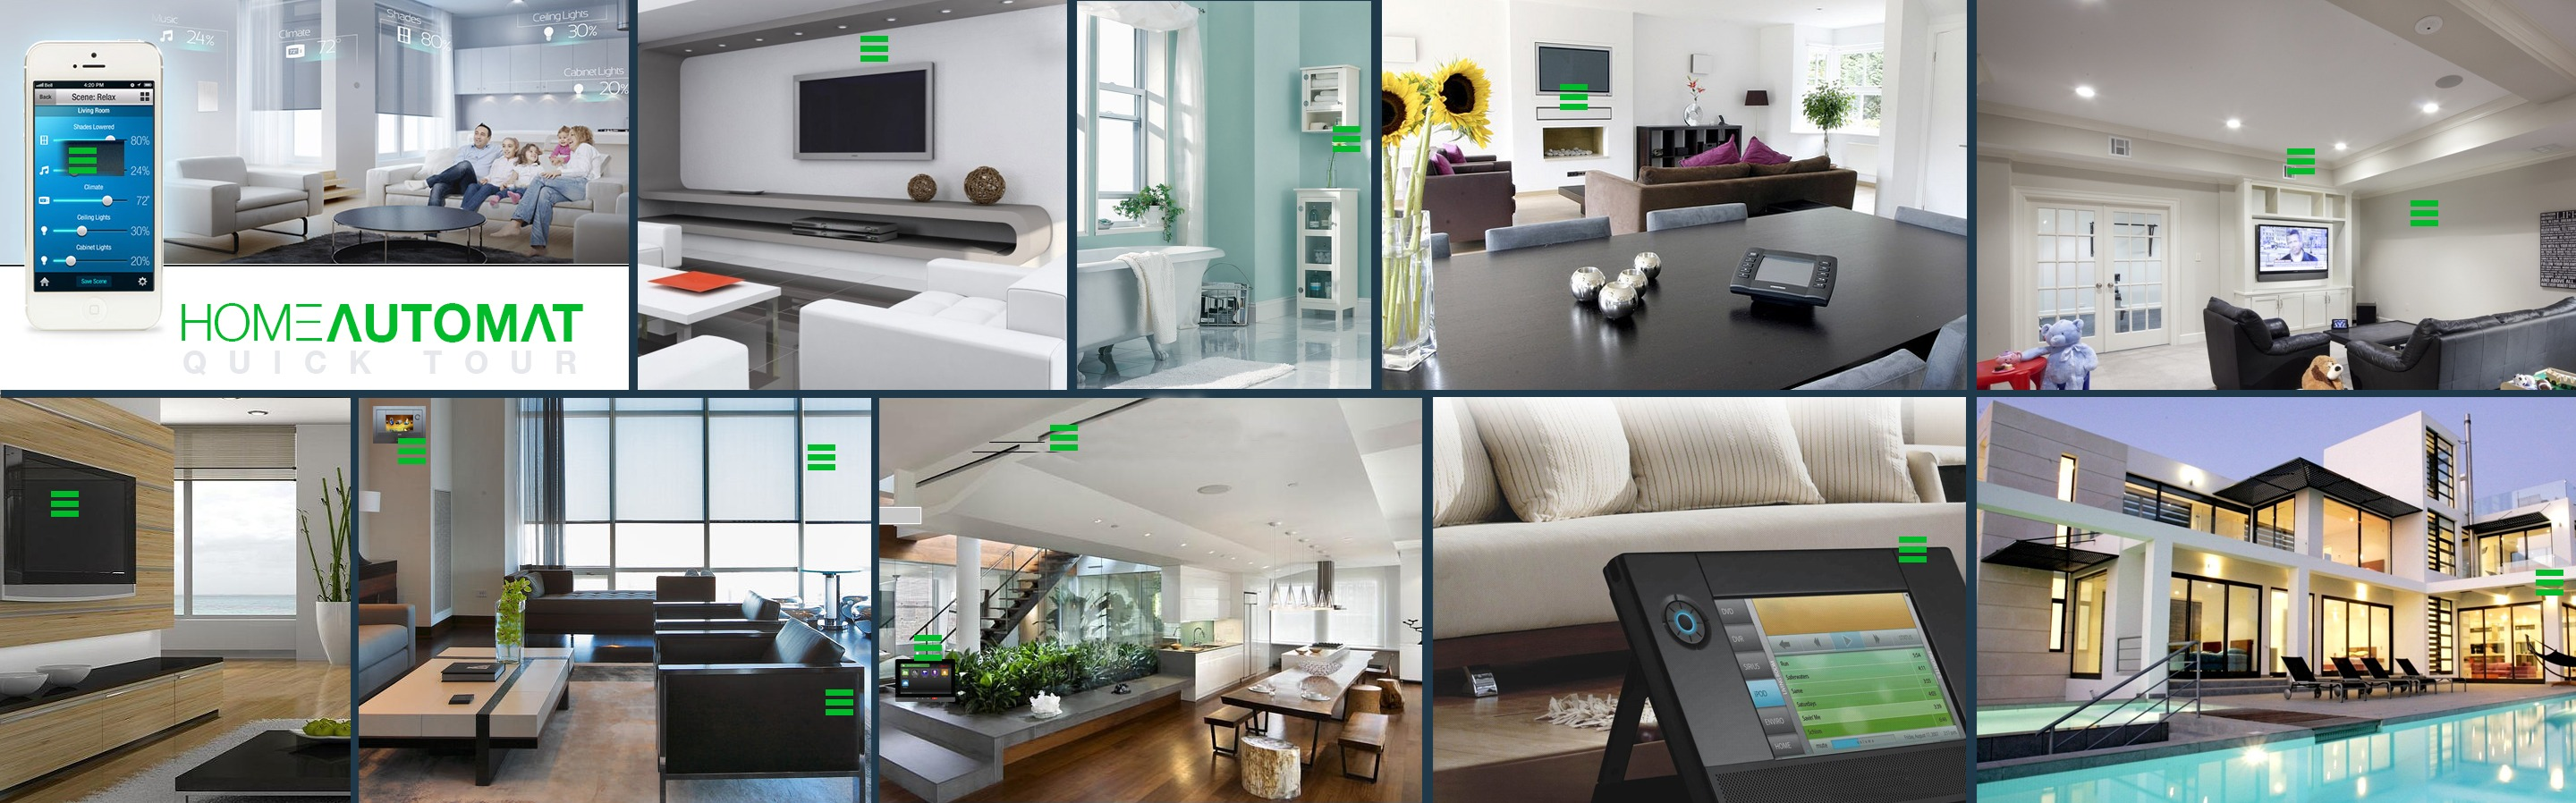 how to design a smart home. Then Roll Your Mouse Over The Communication Icon/symbol To See What A Smart Home Automation Can Deliver Safe, Secure, Savings And Convenience. How Design